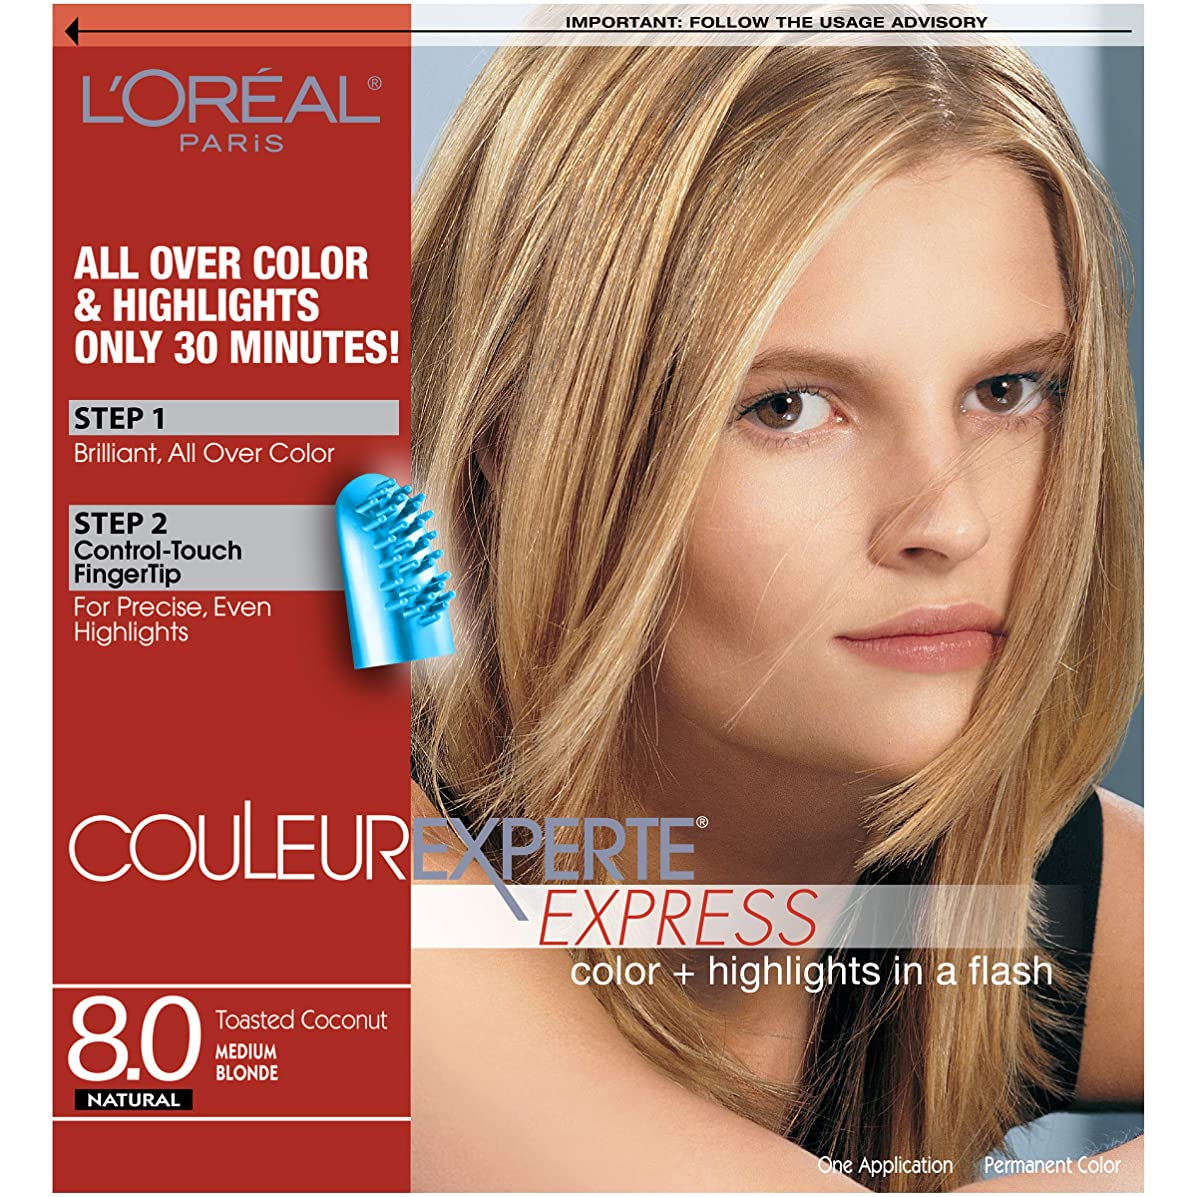 L'Oreal Paris Couleur Experte Color + Highlights in a Flash, Medium Blonde - Toasted Coconut